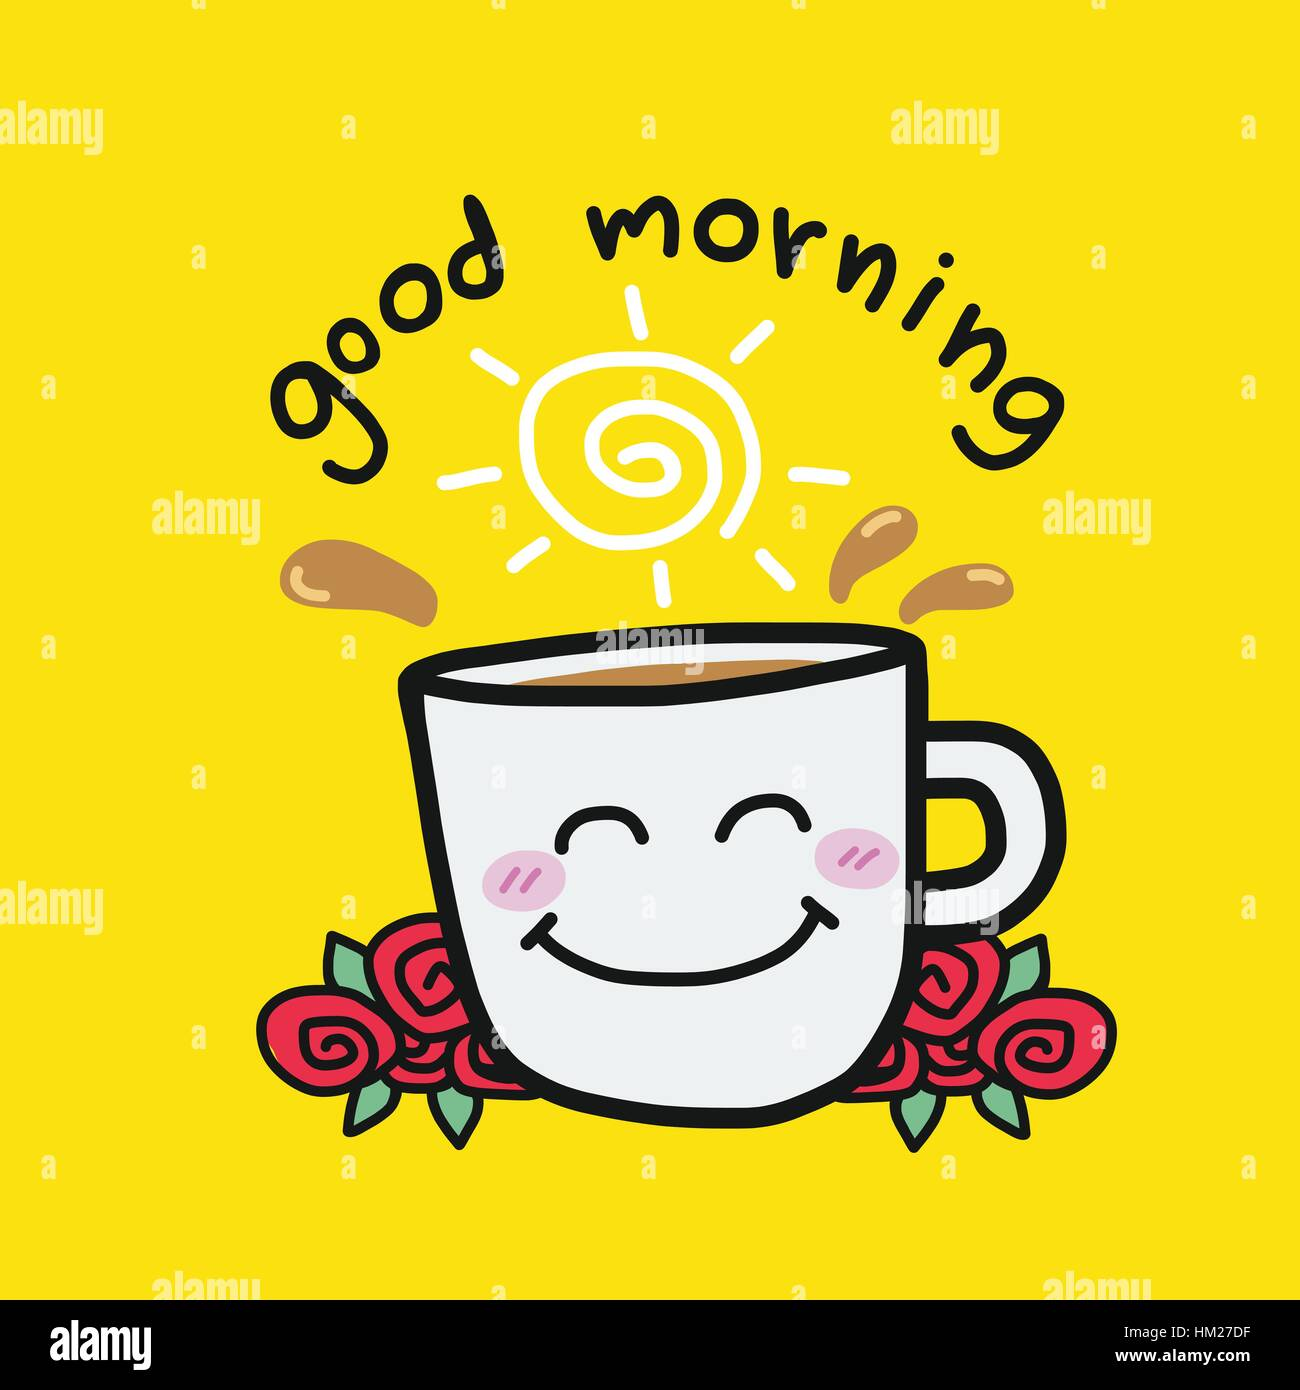 Good morning coffee cup and roses cartoon vector illustration on yellow background - Stock Vector